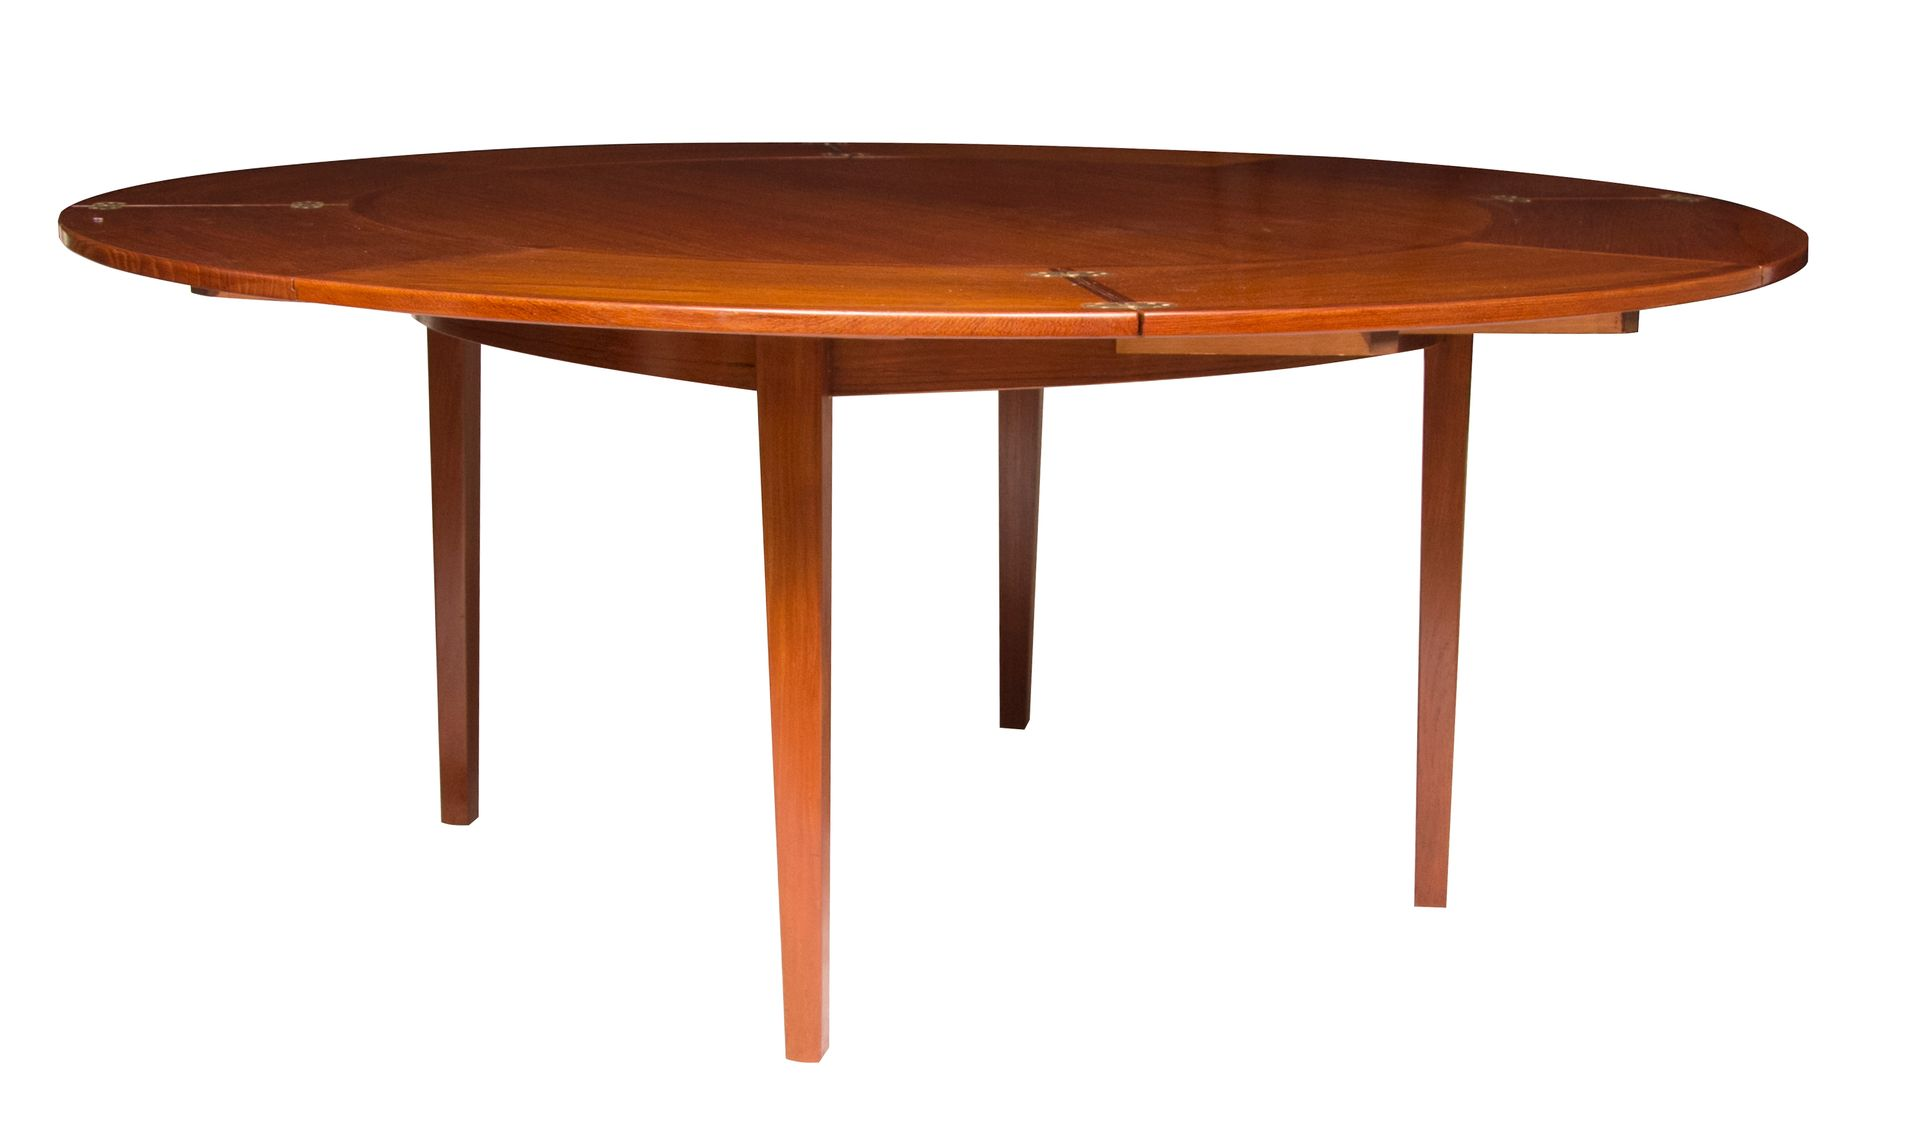 Teak flip flap dining table from dyrlund 1960s for sale for Dining table tj hughes